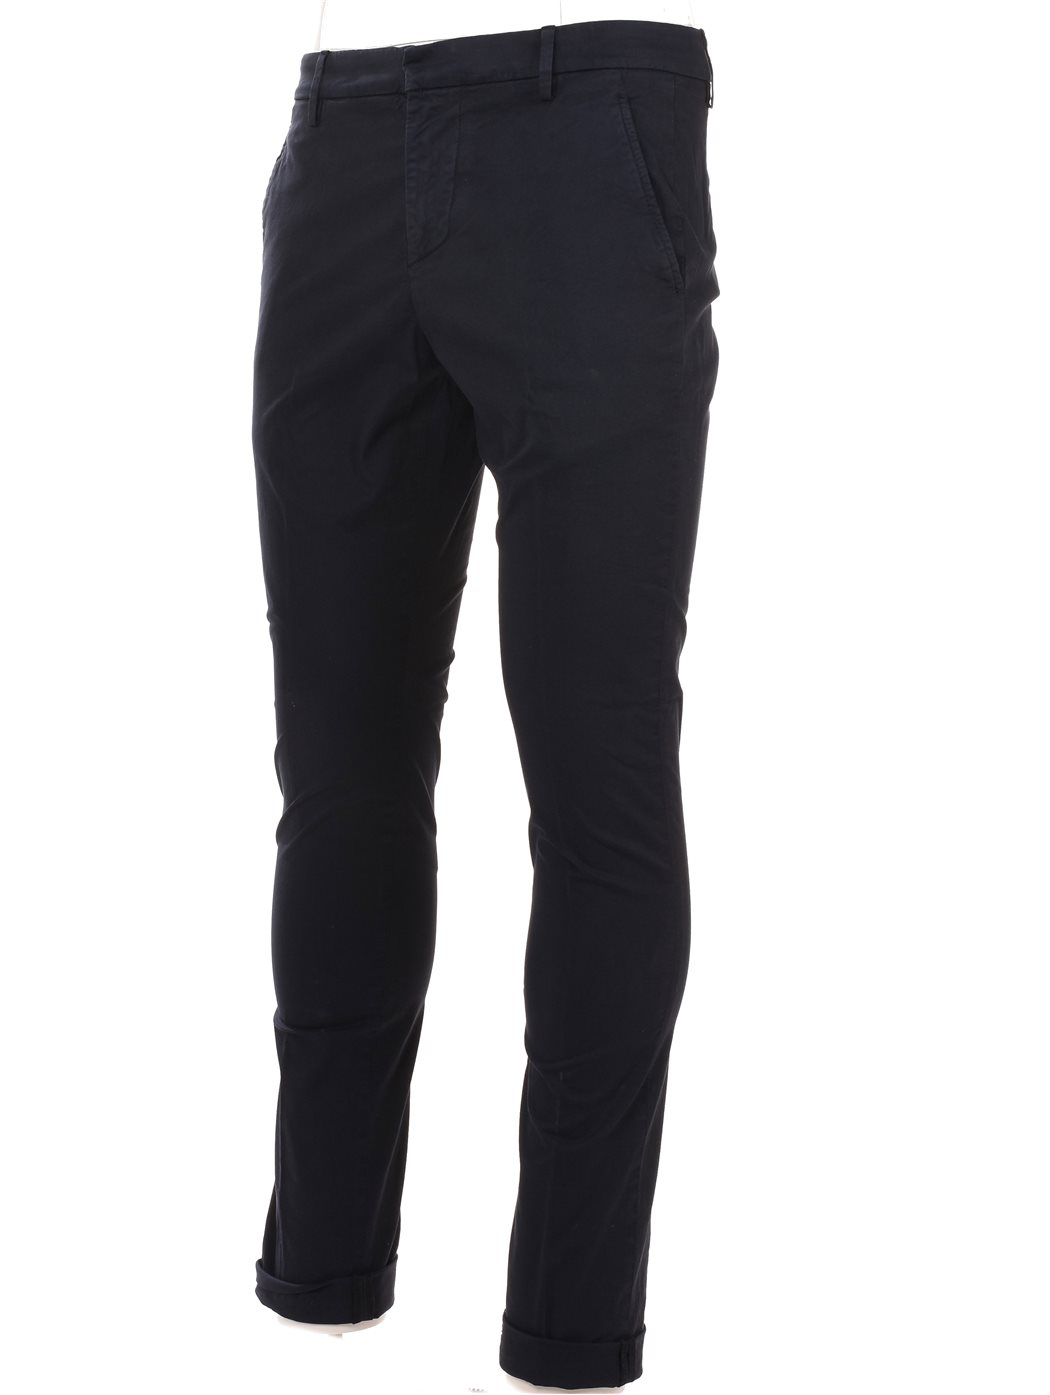 DONDUP UP235 DU897 PANTALONI